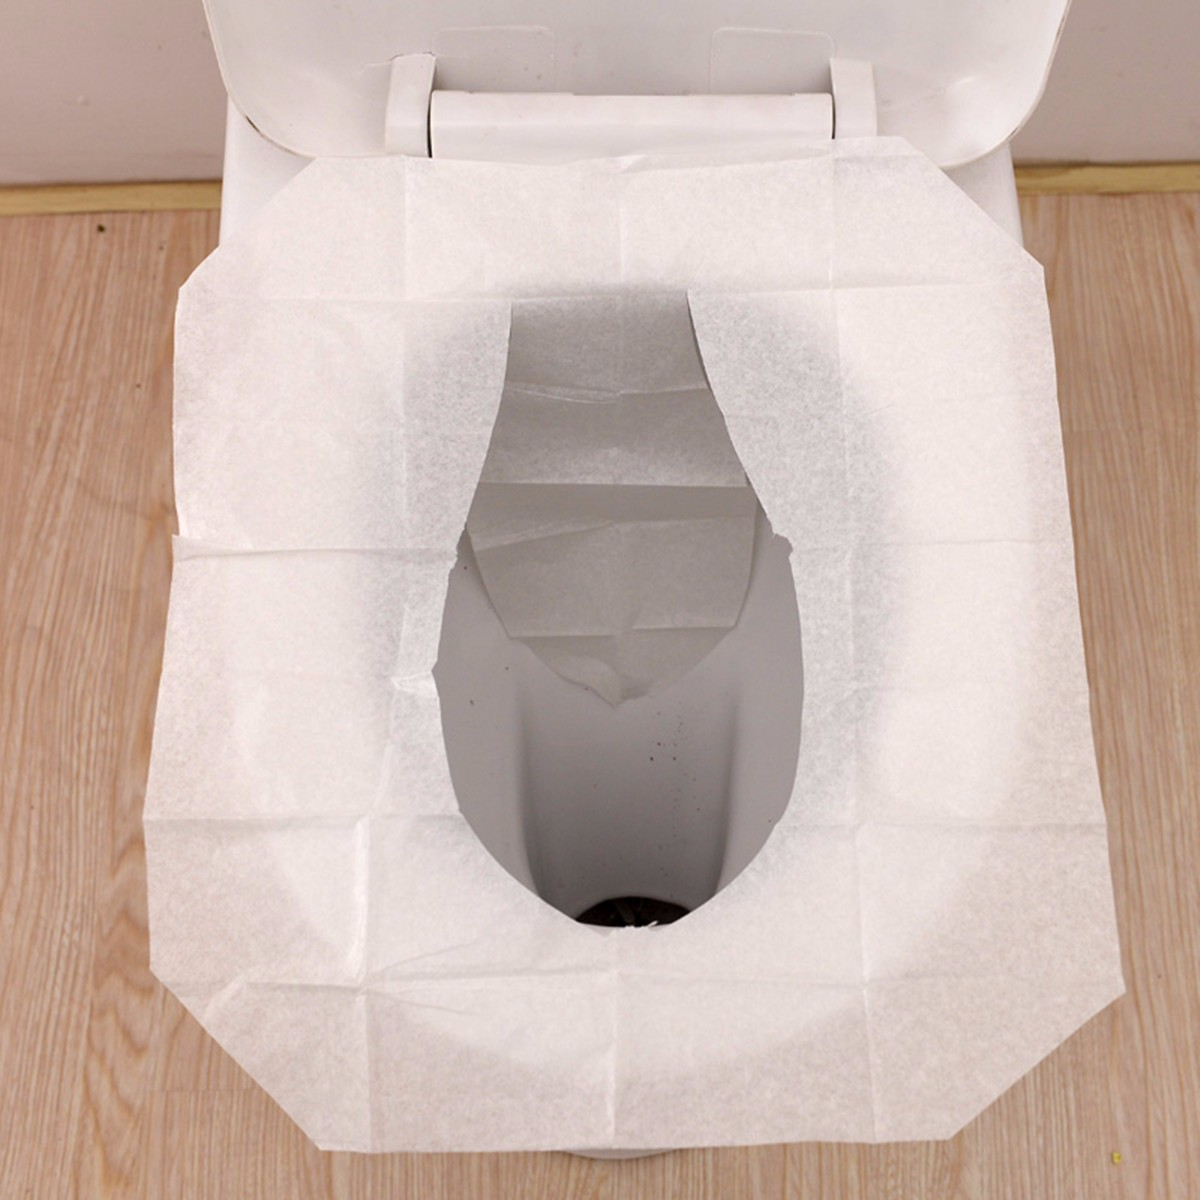 disposable toilet seat covers hygienic protection flushable cover